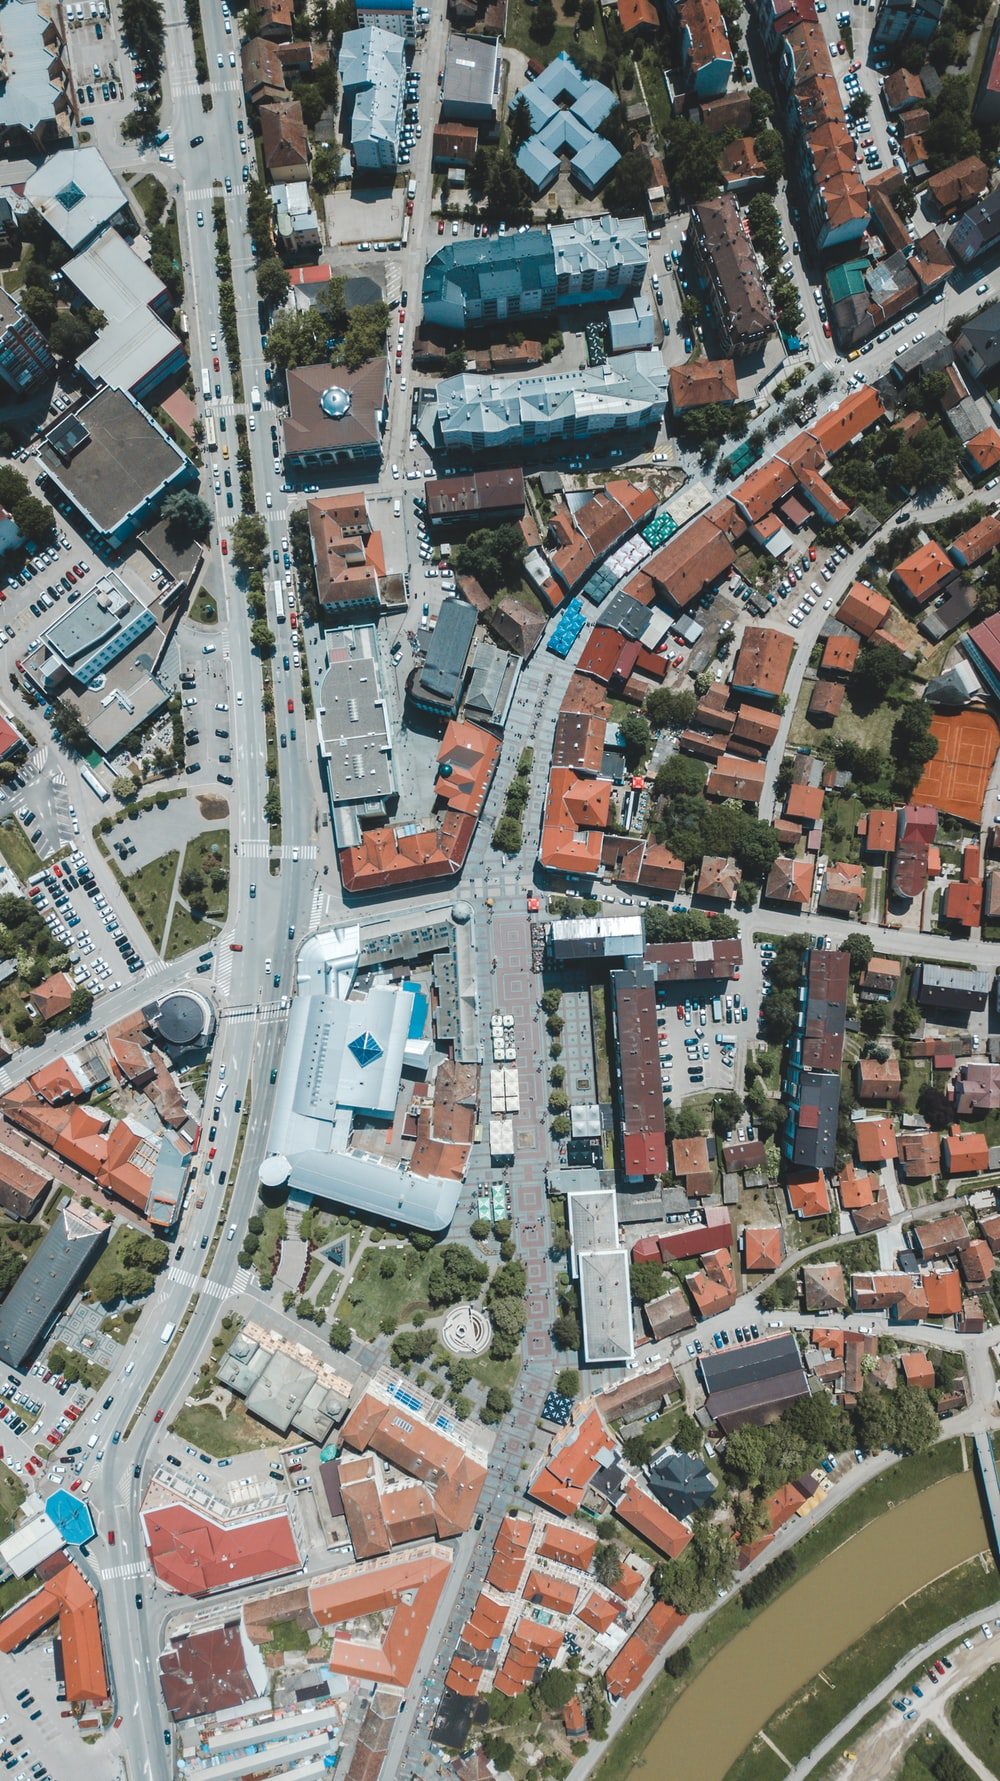 aerial view of streets and houses